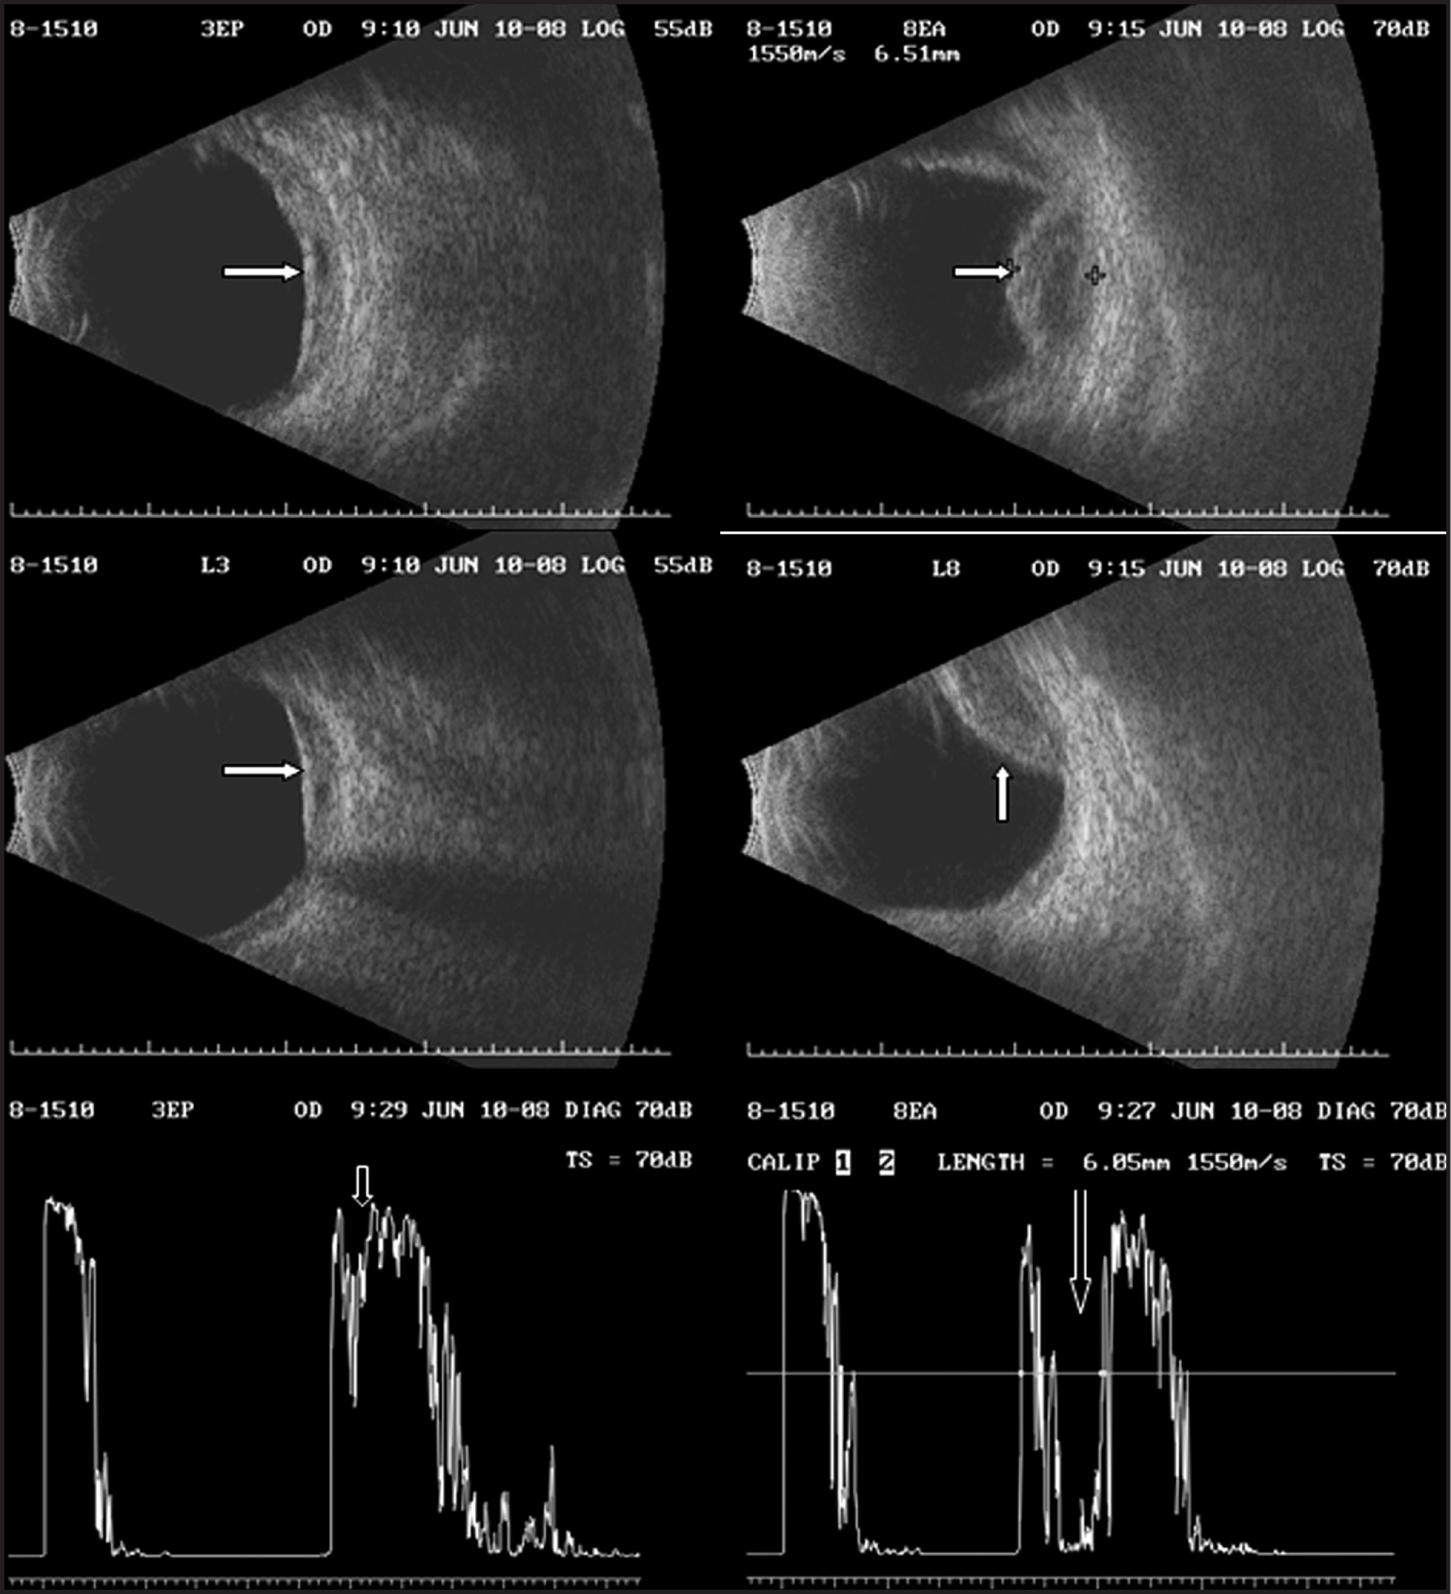 Echography of the Right Eye at Time of Diagnosis of Posterior Scleritis. Transverse and Longitudinal B-Scans and Standardized A-Scan Showed that the Thickening of the Ocular Coats Remained Nasally (arrows) but the Reflectivity Was Higher than at the Initial Visit (down Arrow) (left Column). Transverse and Longitudinal B-Scans Showed What Appeared to Be Choroidal Detachments (side and up Arrow) (right Column). The Echo Dense Signals in the Suprachoroidal Space Signified that This Material Was Non-Serous in Nature. The Standardized A-Scan Showed Low Amplitude Signals (down Arrow) Produced by the Suprachoroidal Substance, Which could be Consistent with Hemorrhage.